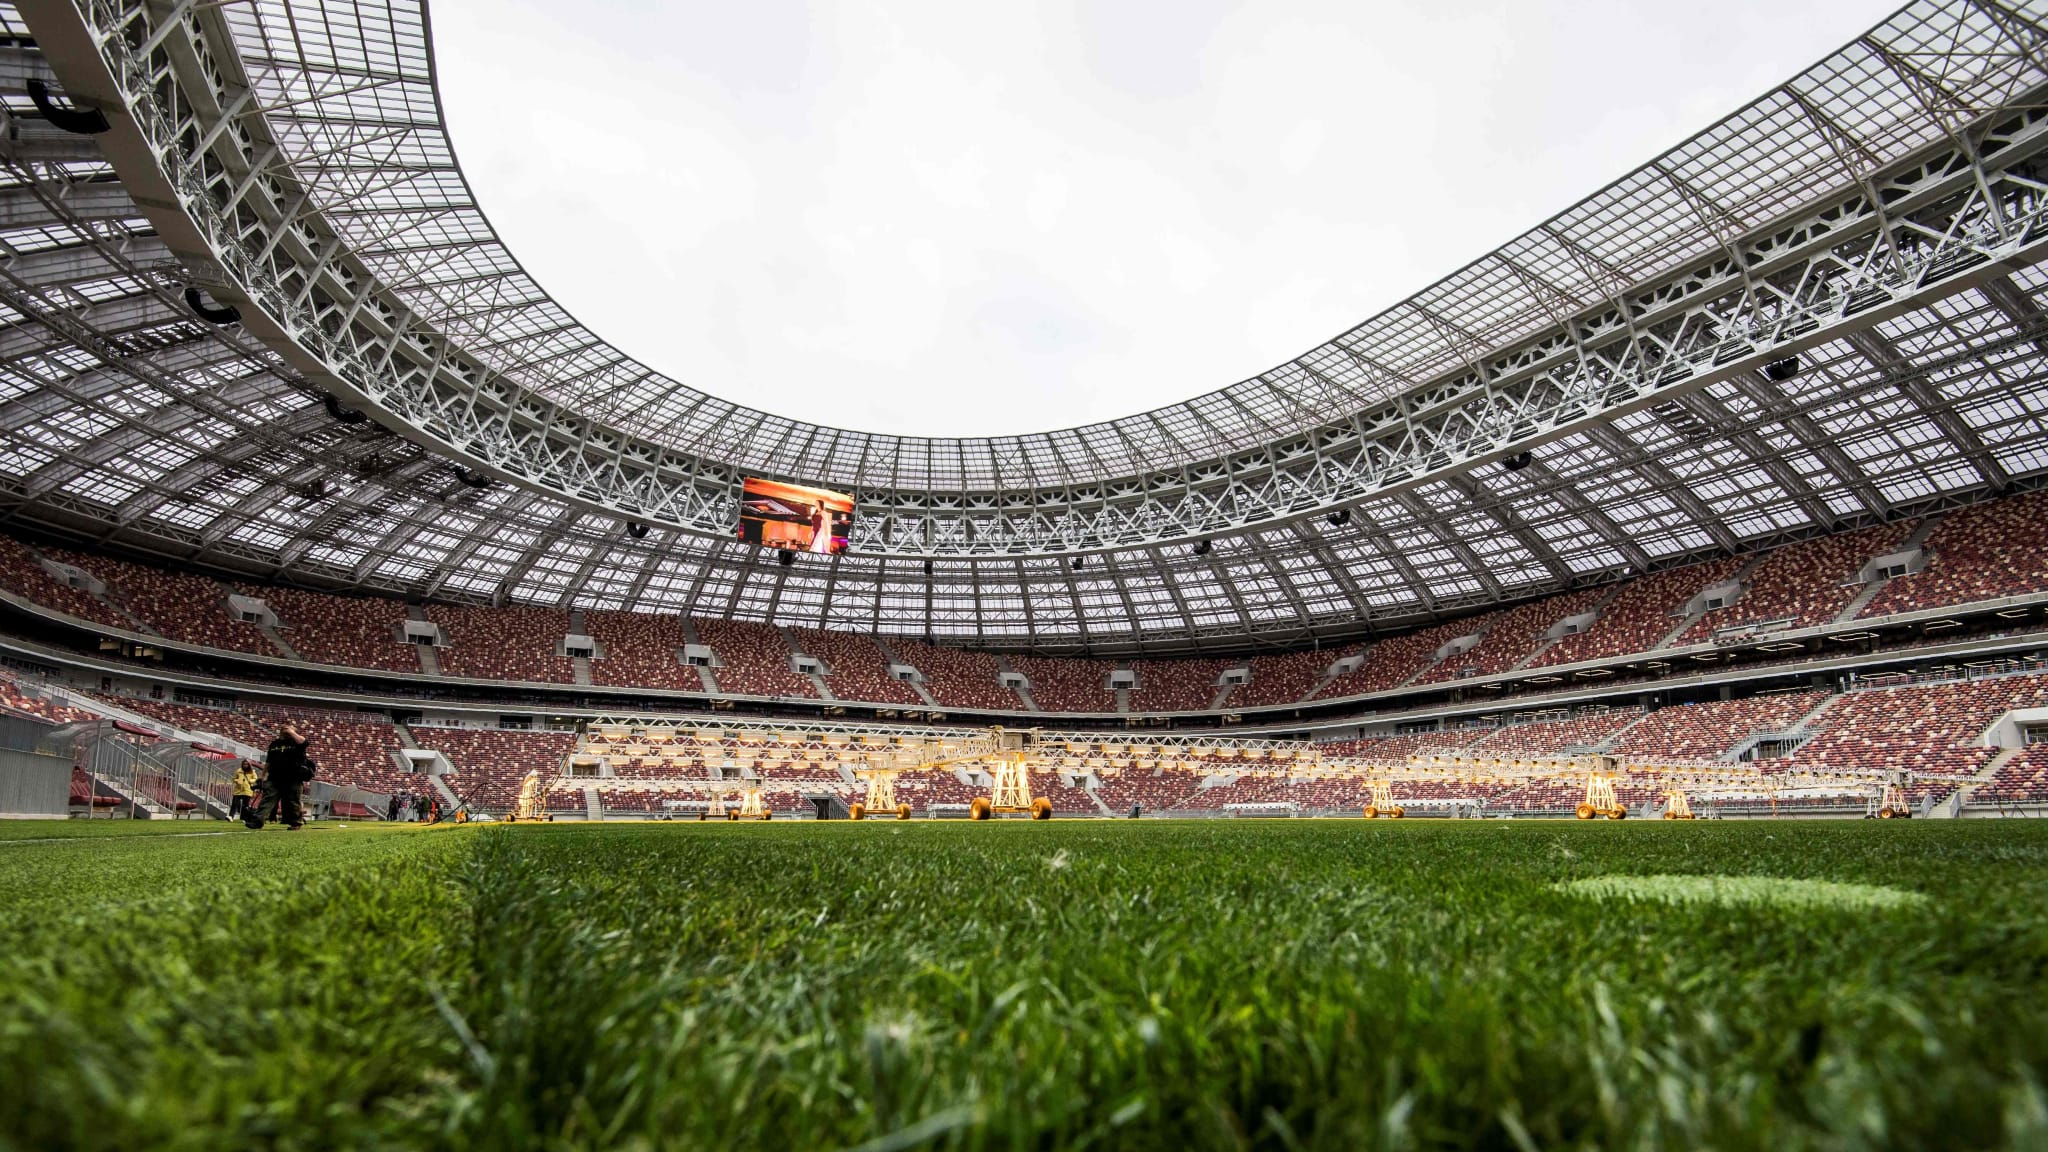 China National Stadium has entered new era of Hybrid turf system